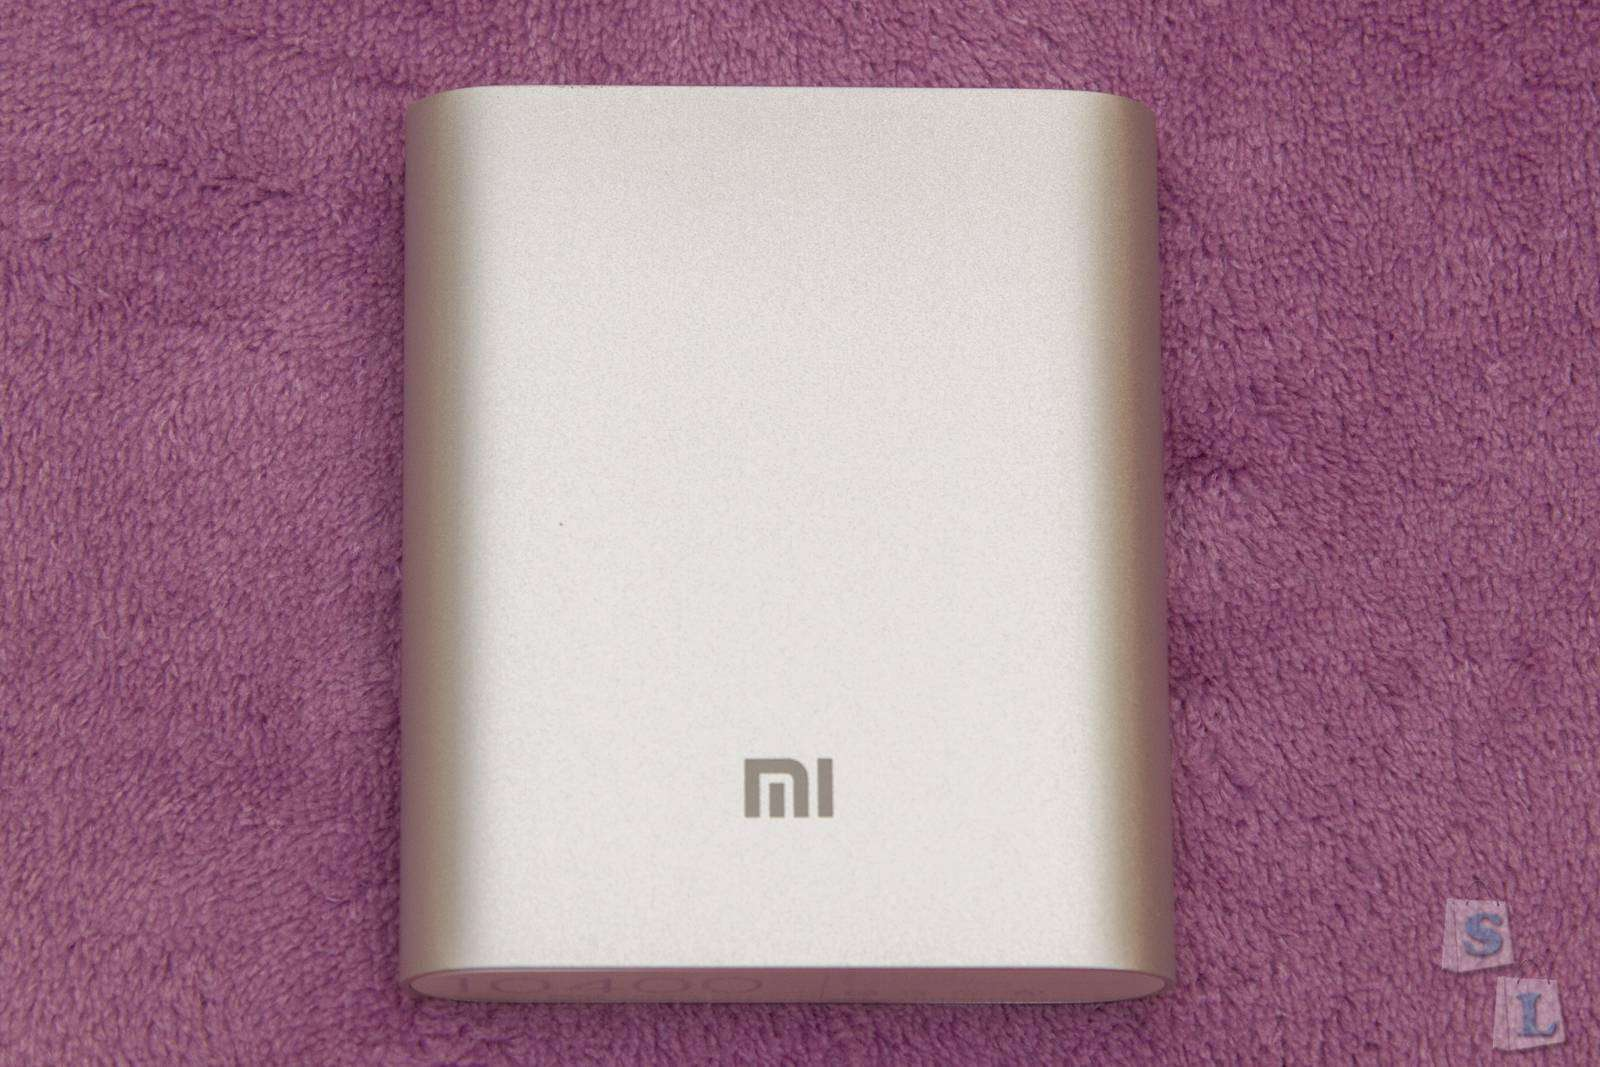 GearBest: Отчет о призе в конкурсе Активное лето - Power Bank Xiaomi Mi 10400mAh